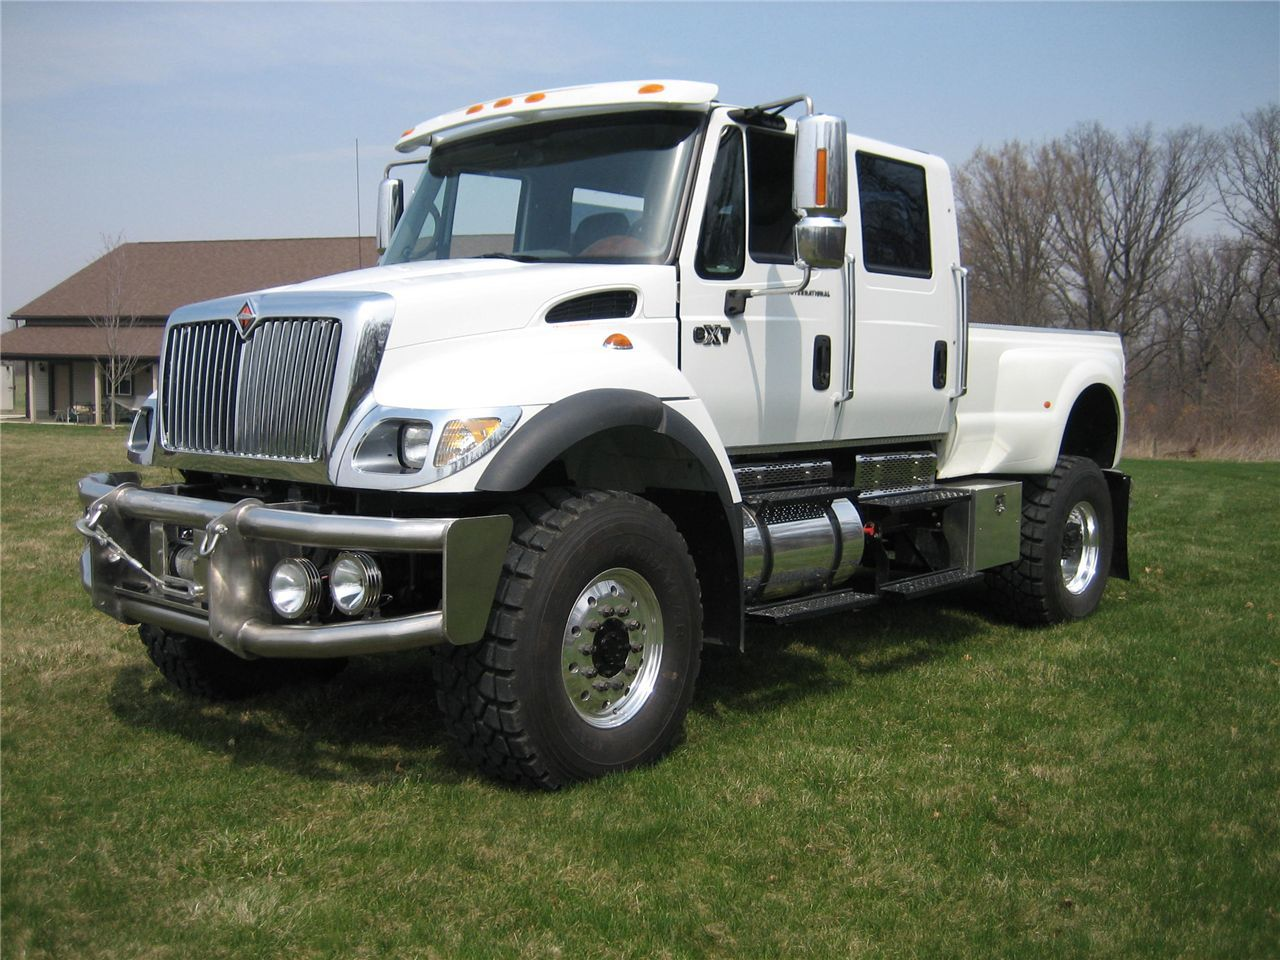 International Cxt Custom | Sport chassis trucks and toters ...